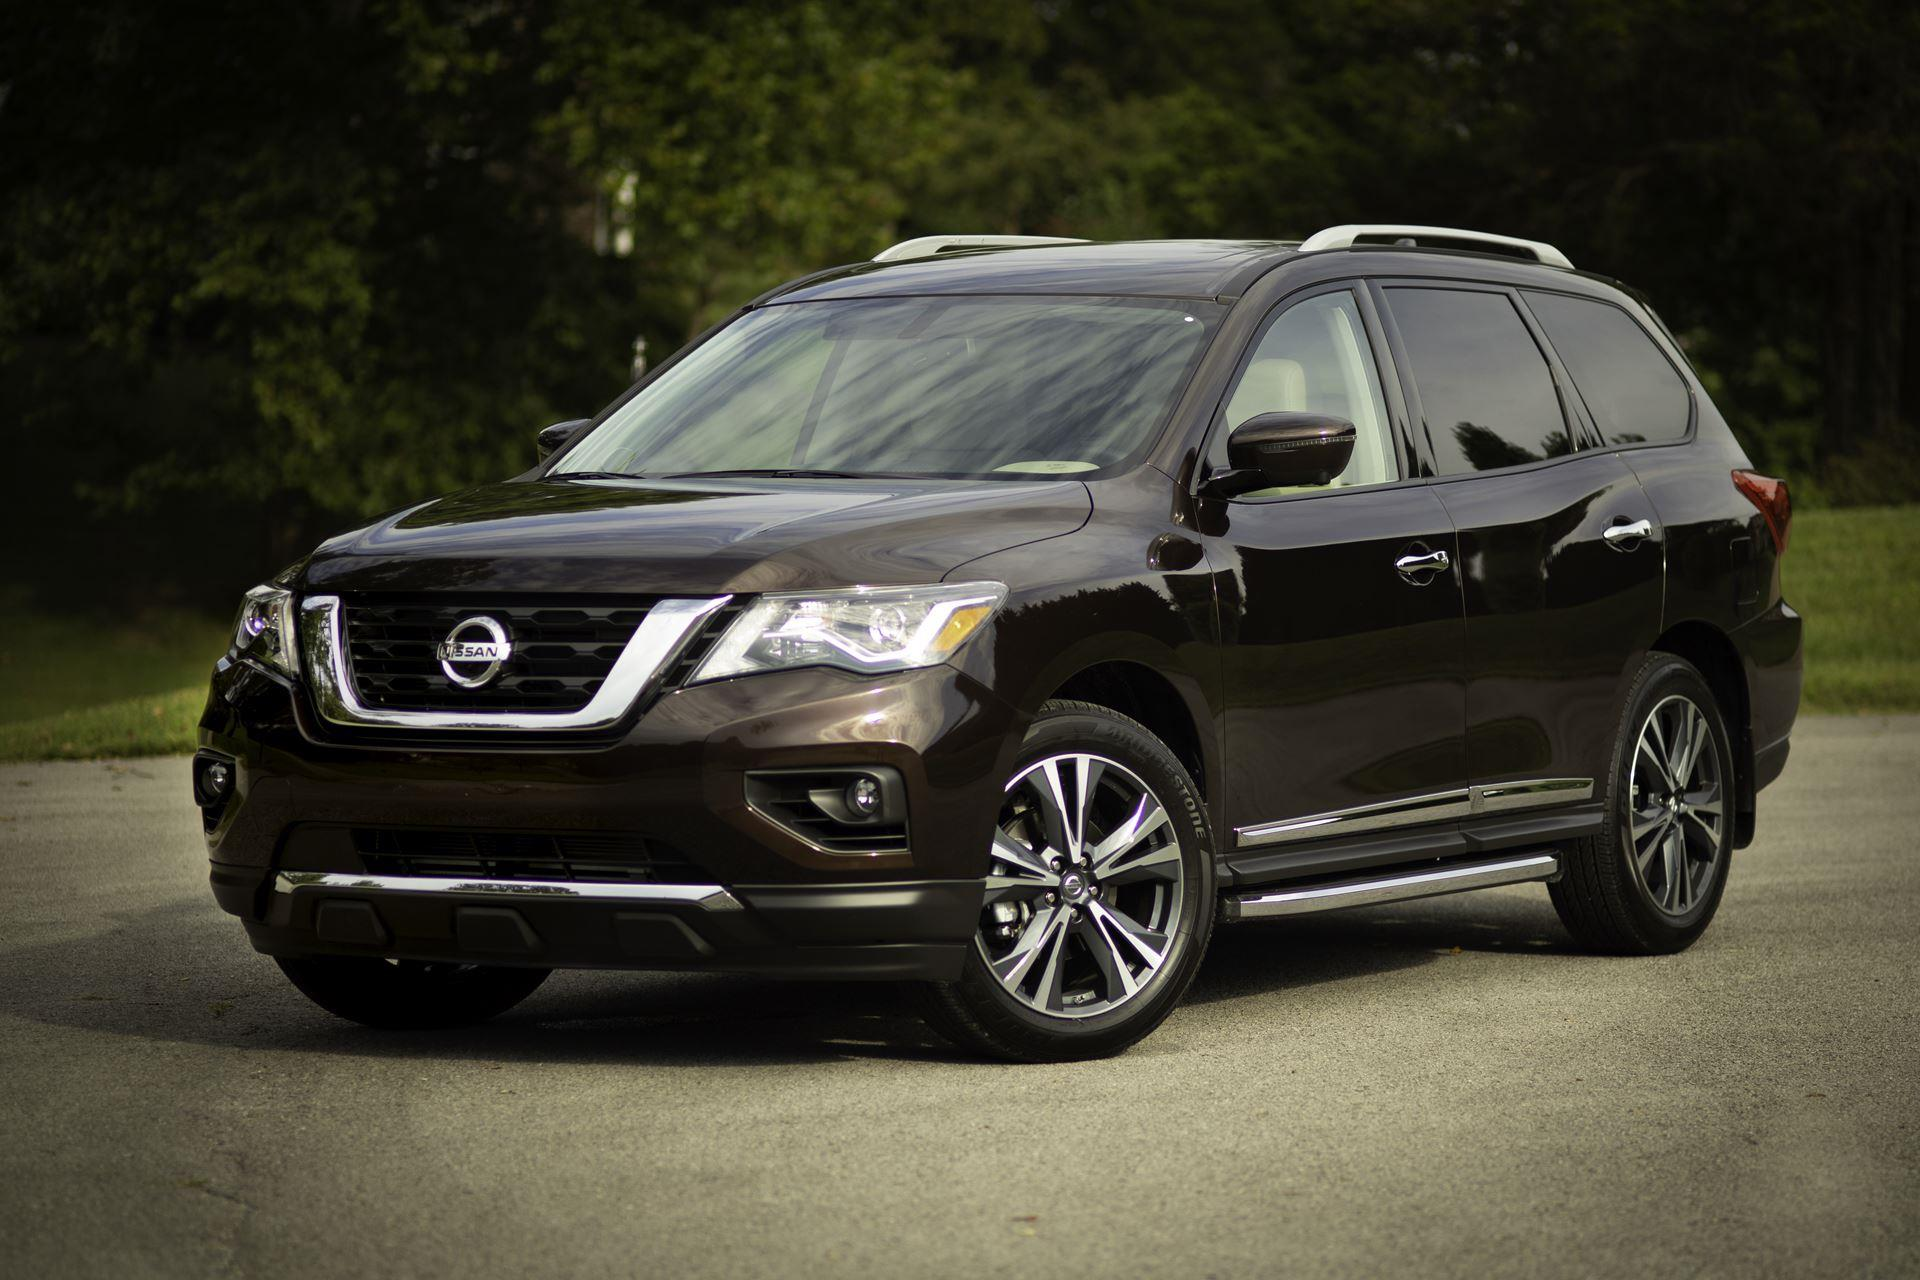 2019 Nissan Pathfinder News And Information 2013 Trailer Tow Wiring